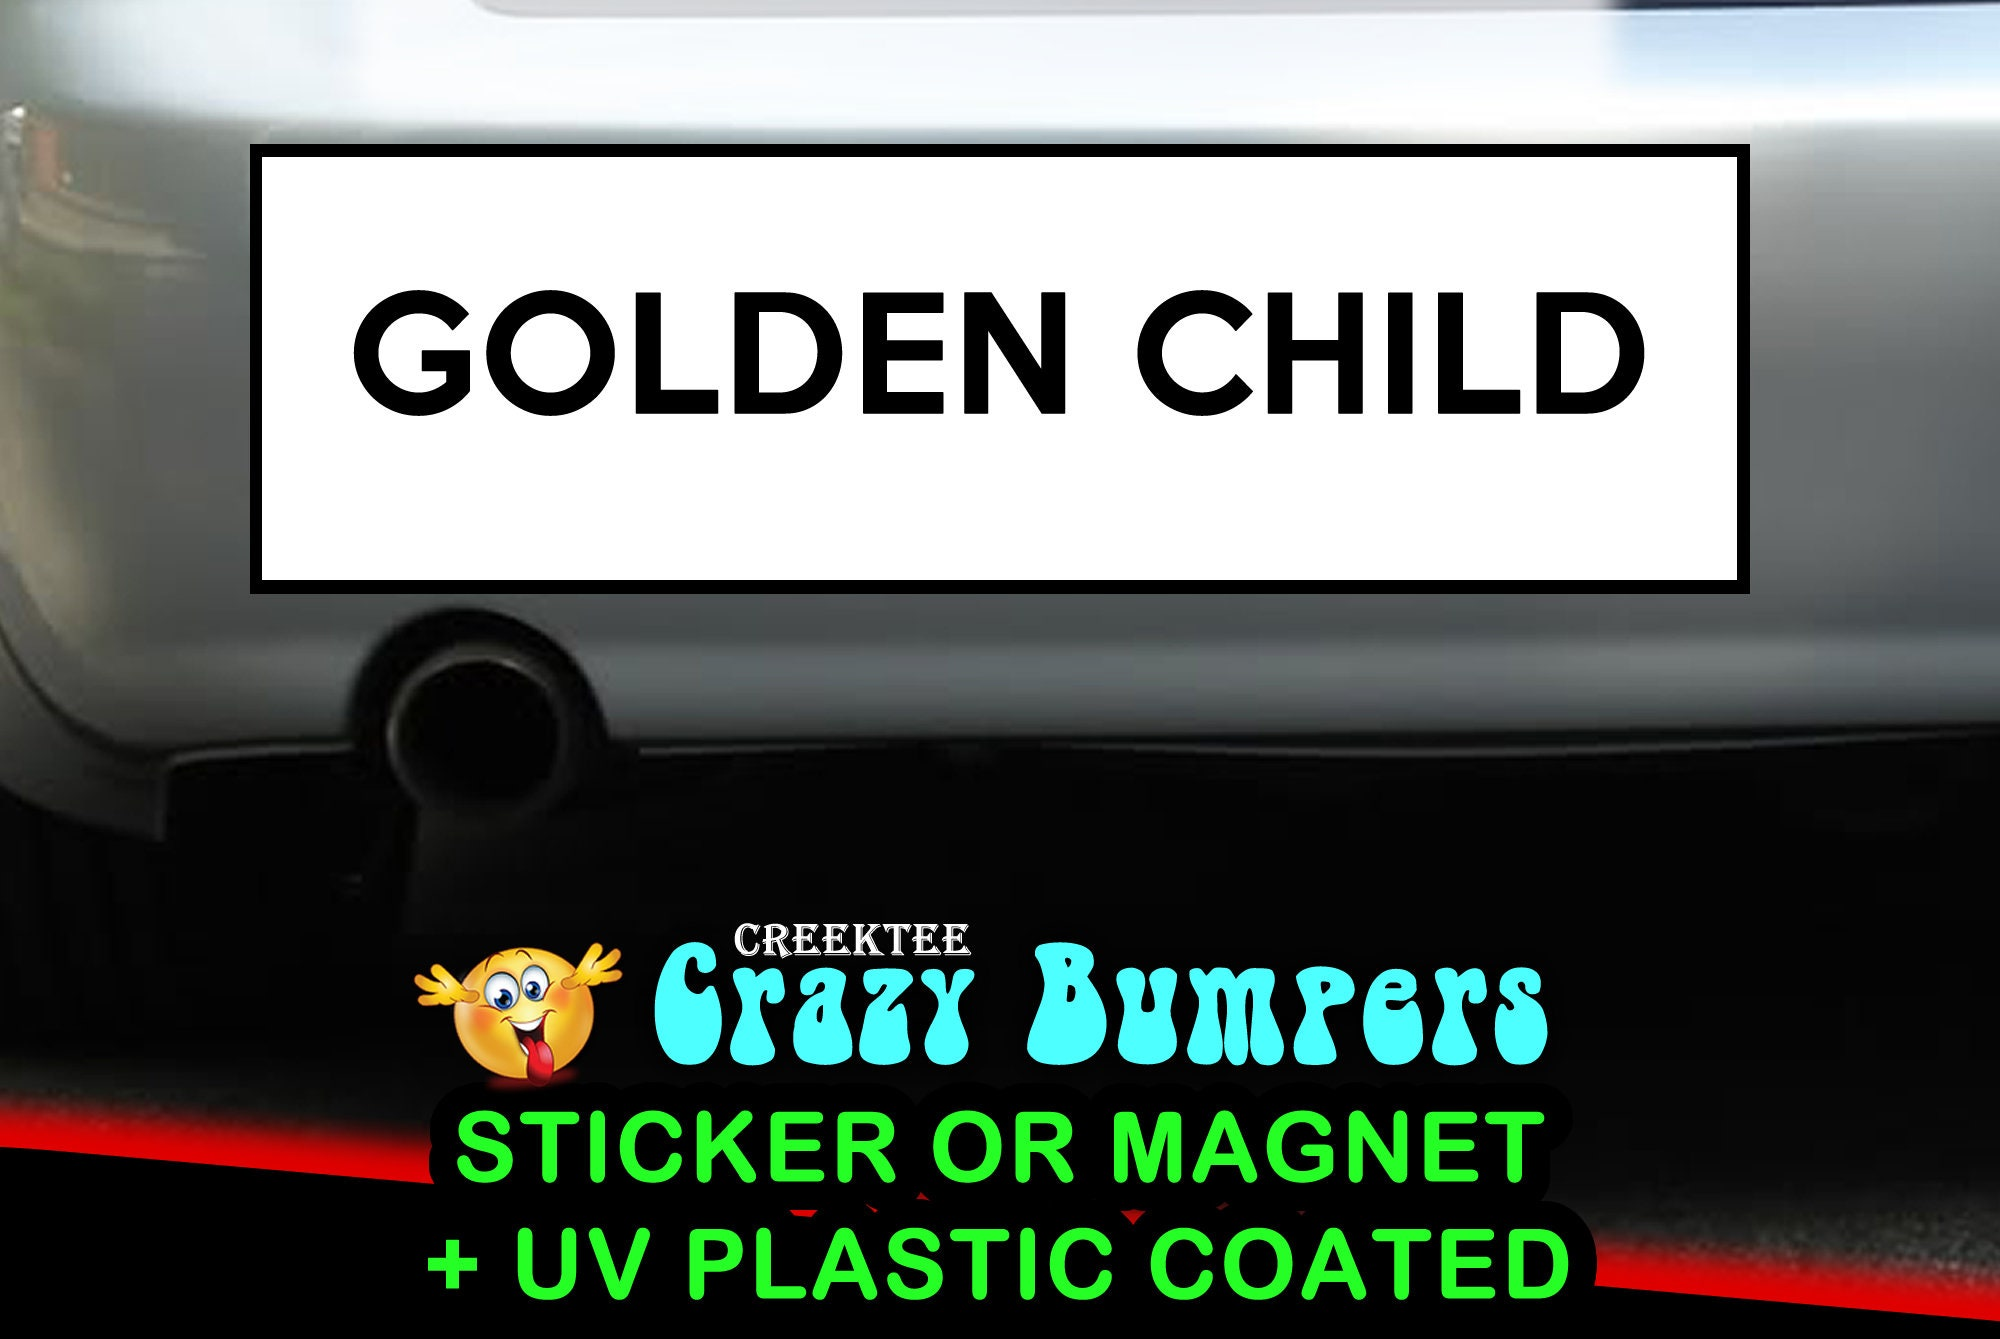 CAD$9.74 - Golden Child  10 x 3 Bumper Sticker or Magnetic Bumper Sticker Available